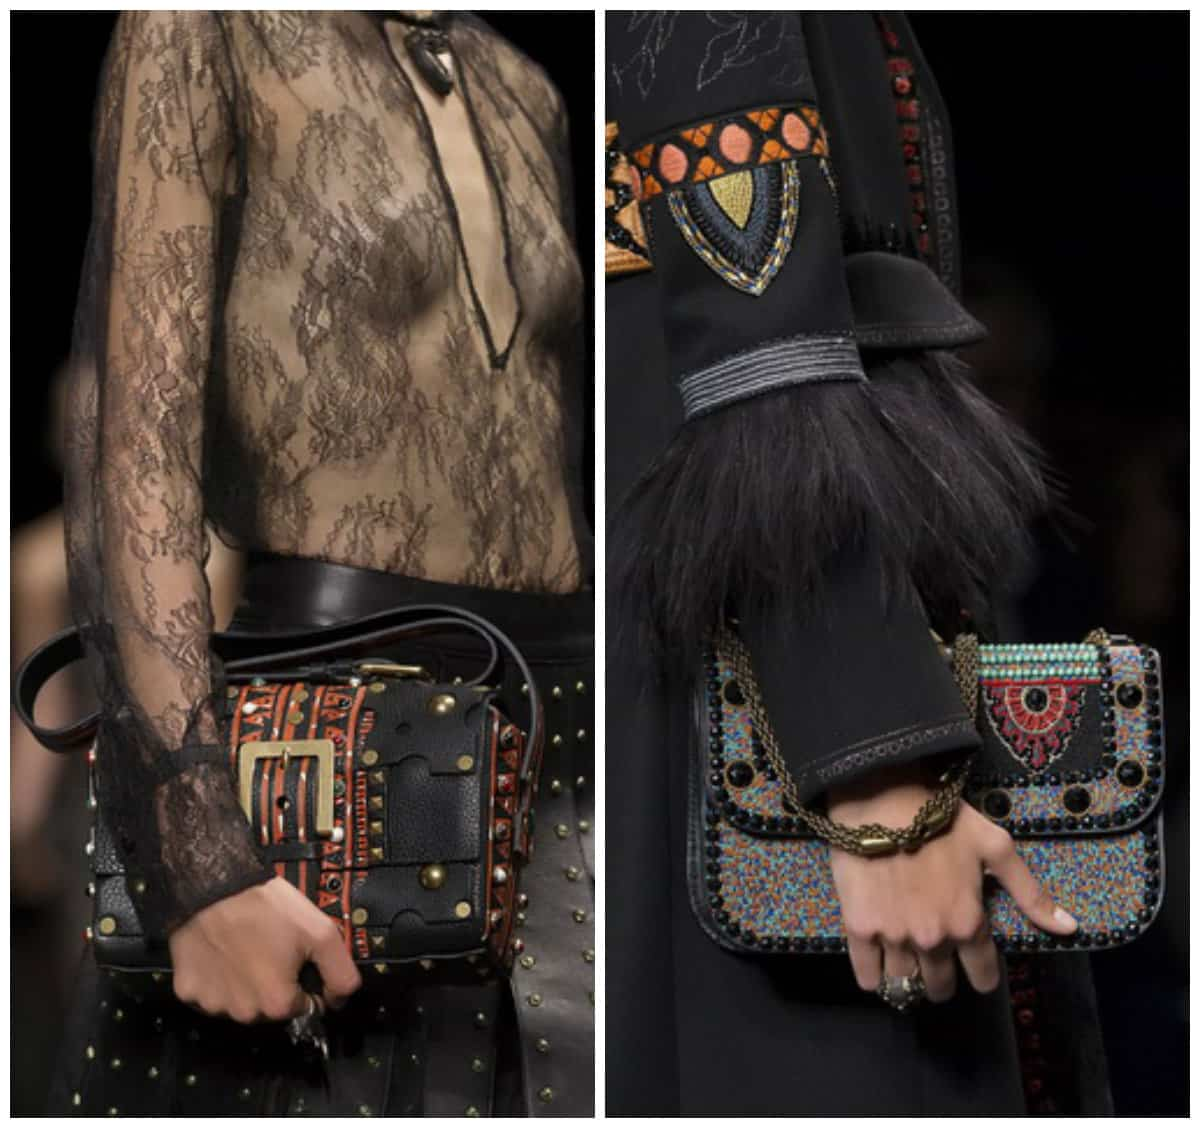 Ladies hand bags from Valentino Spring-Summer 2016